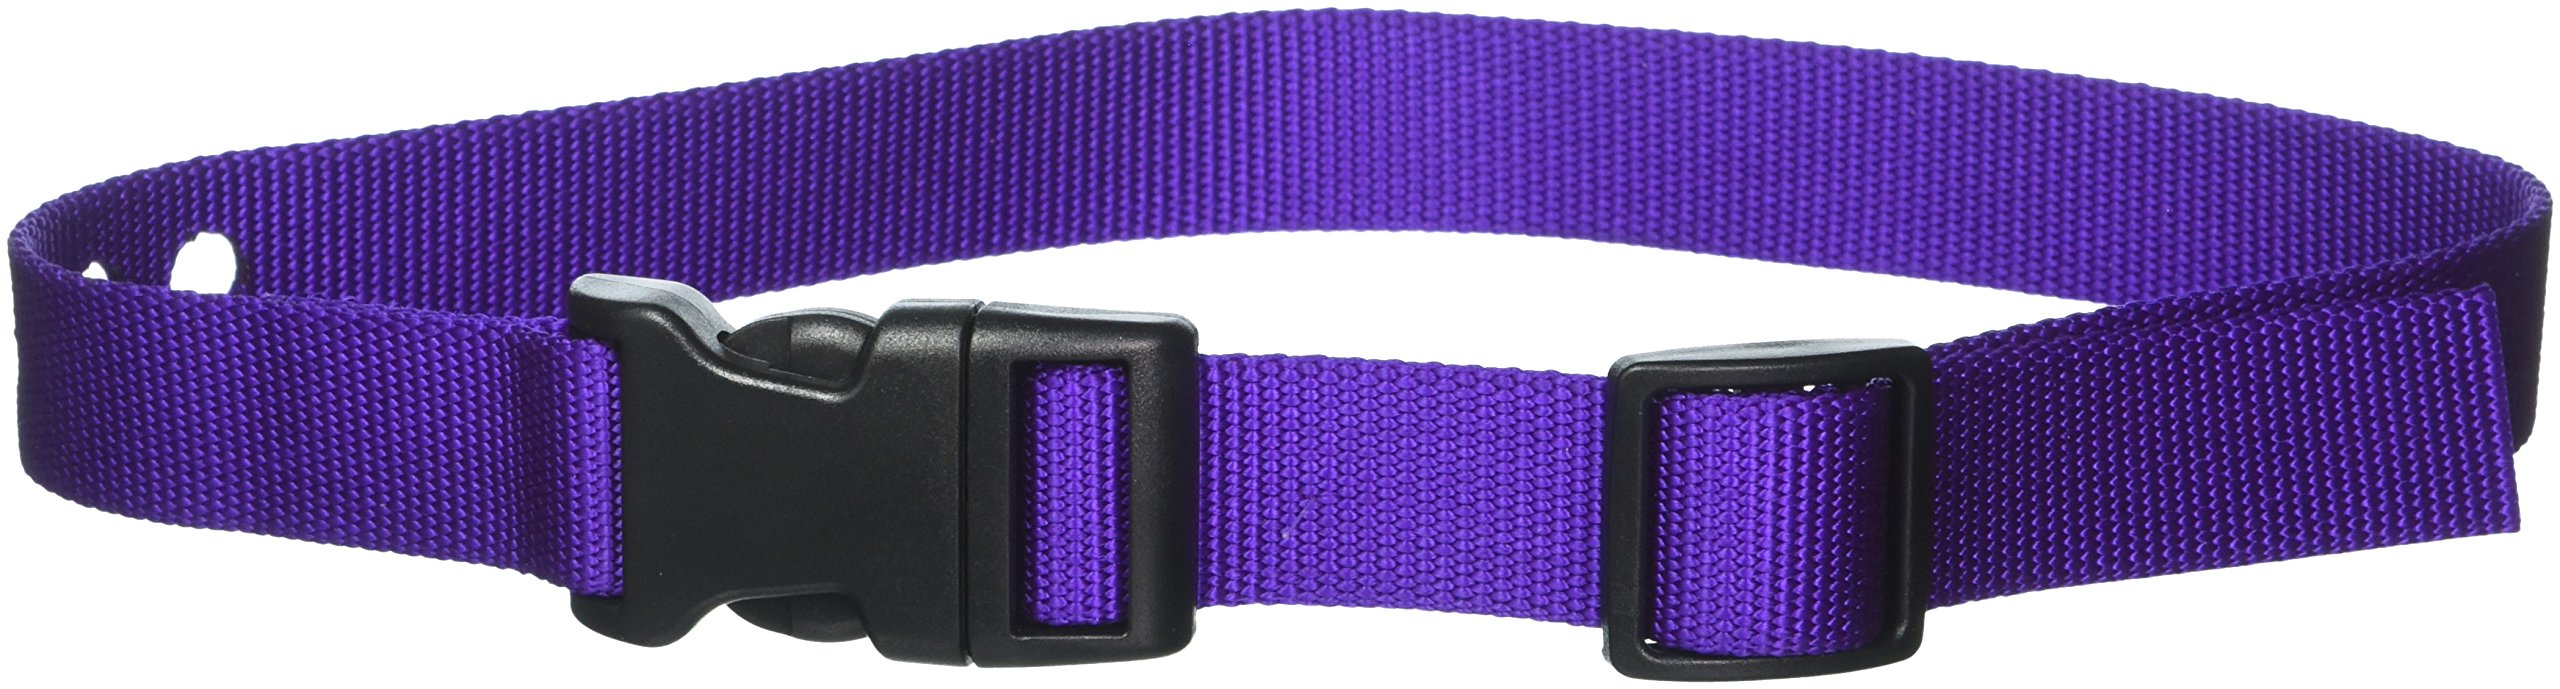 Grain Valley 1'' Replacement Strap, Color: Purple. Sold Per Each. Fits Most PetSafe Bark Collars and Many Containment Collars. (No-Bark Collars / Accessories)